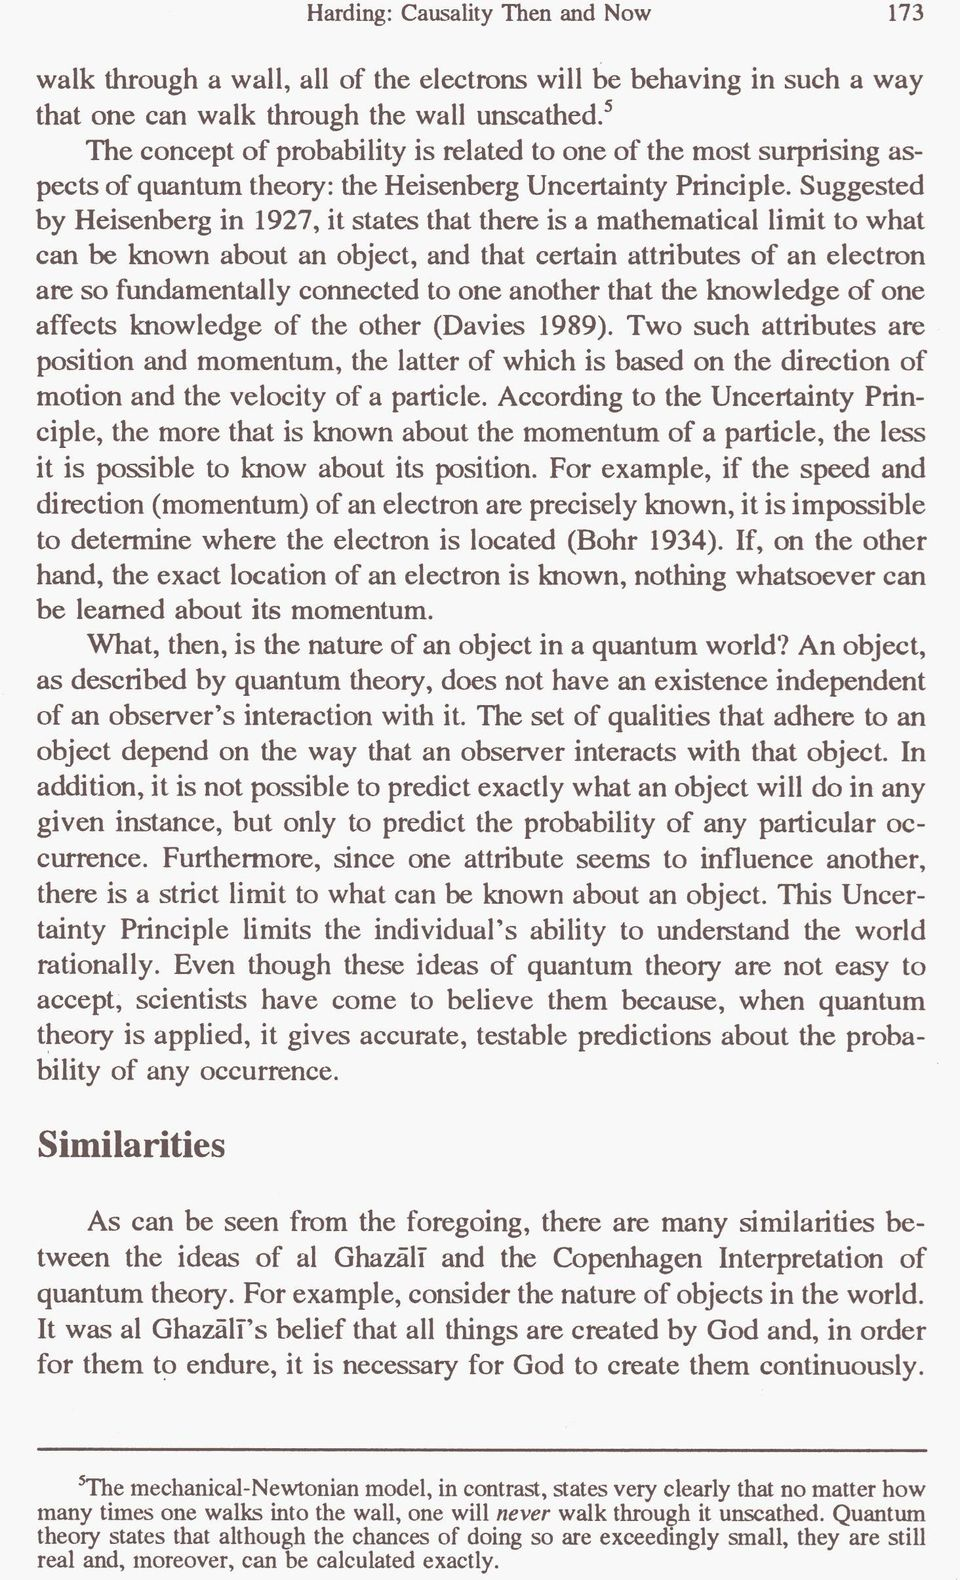 Suggested by Heisenberg in 1927, it states that there is a mathematical limit to what can be known about an object, and that cettain attributes of an electron are so fundamentally connected to one